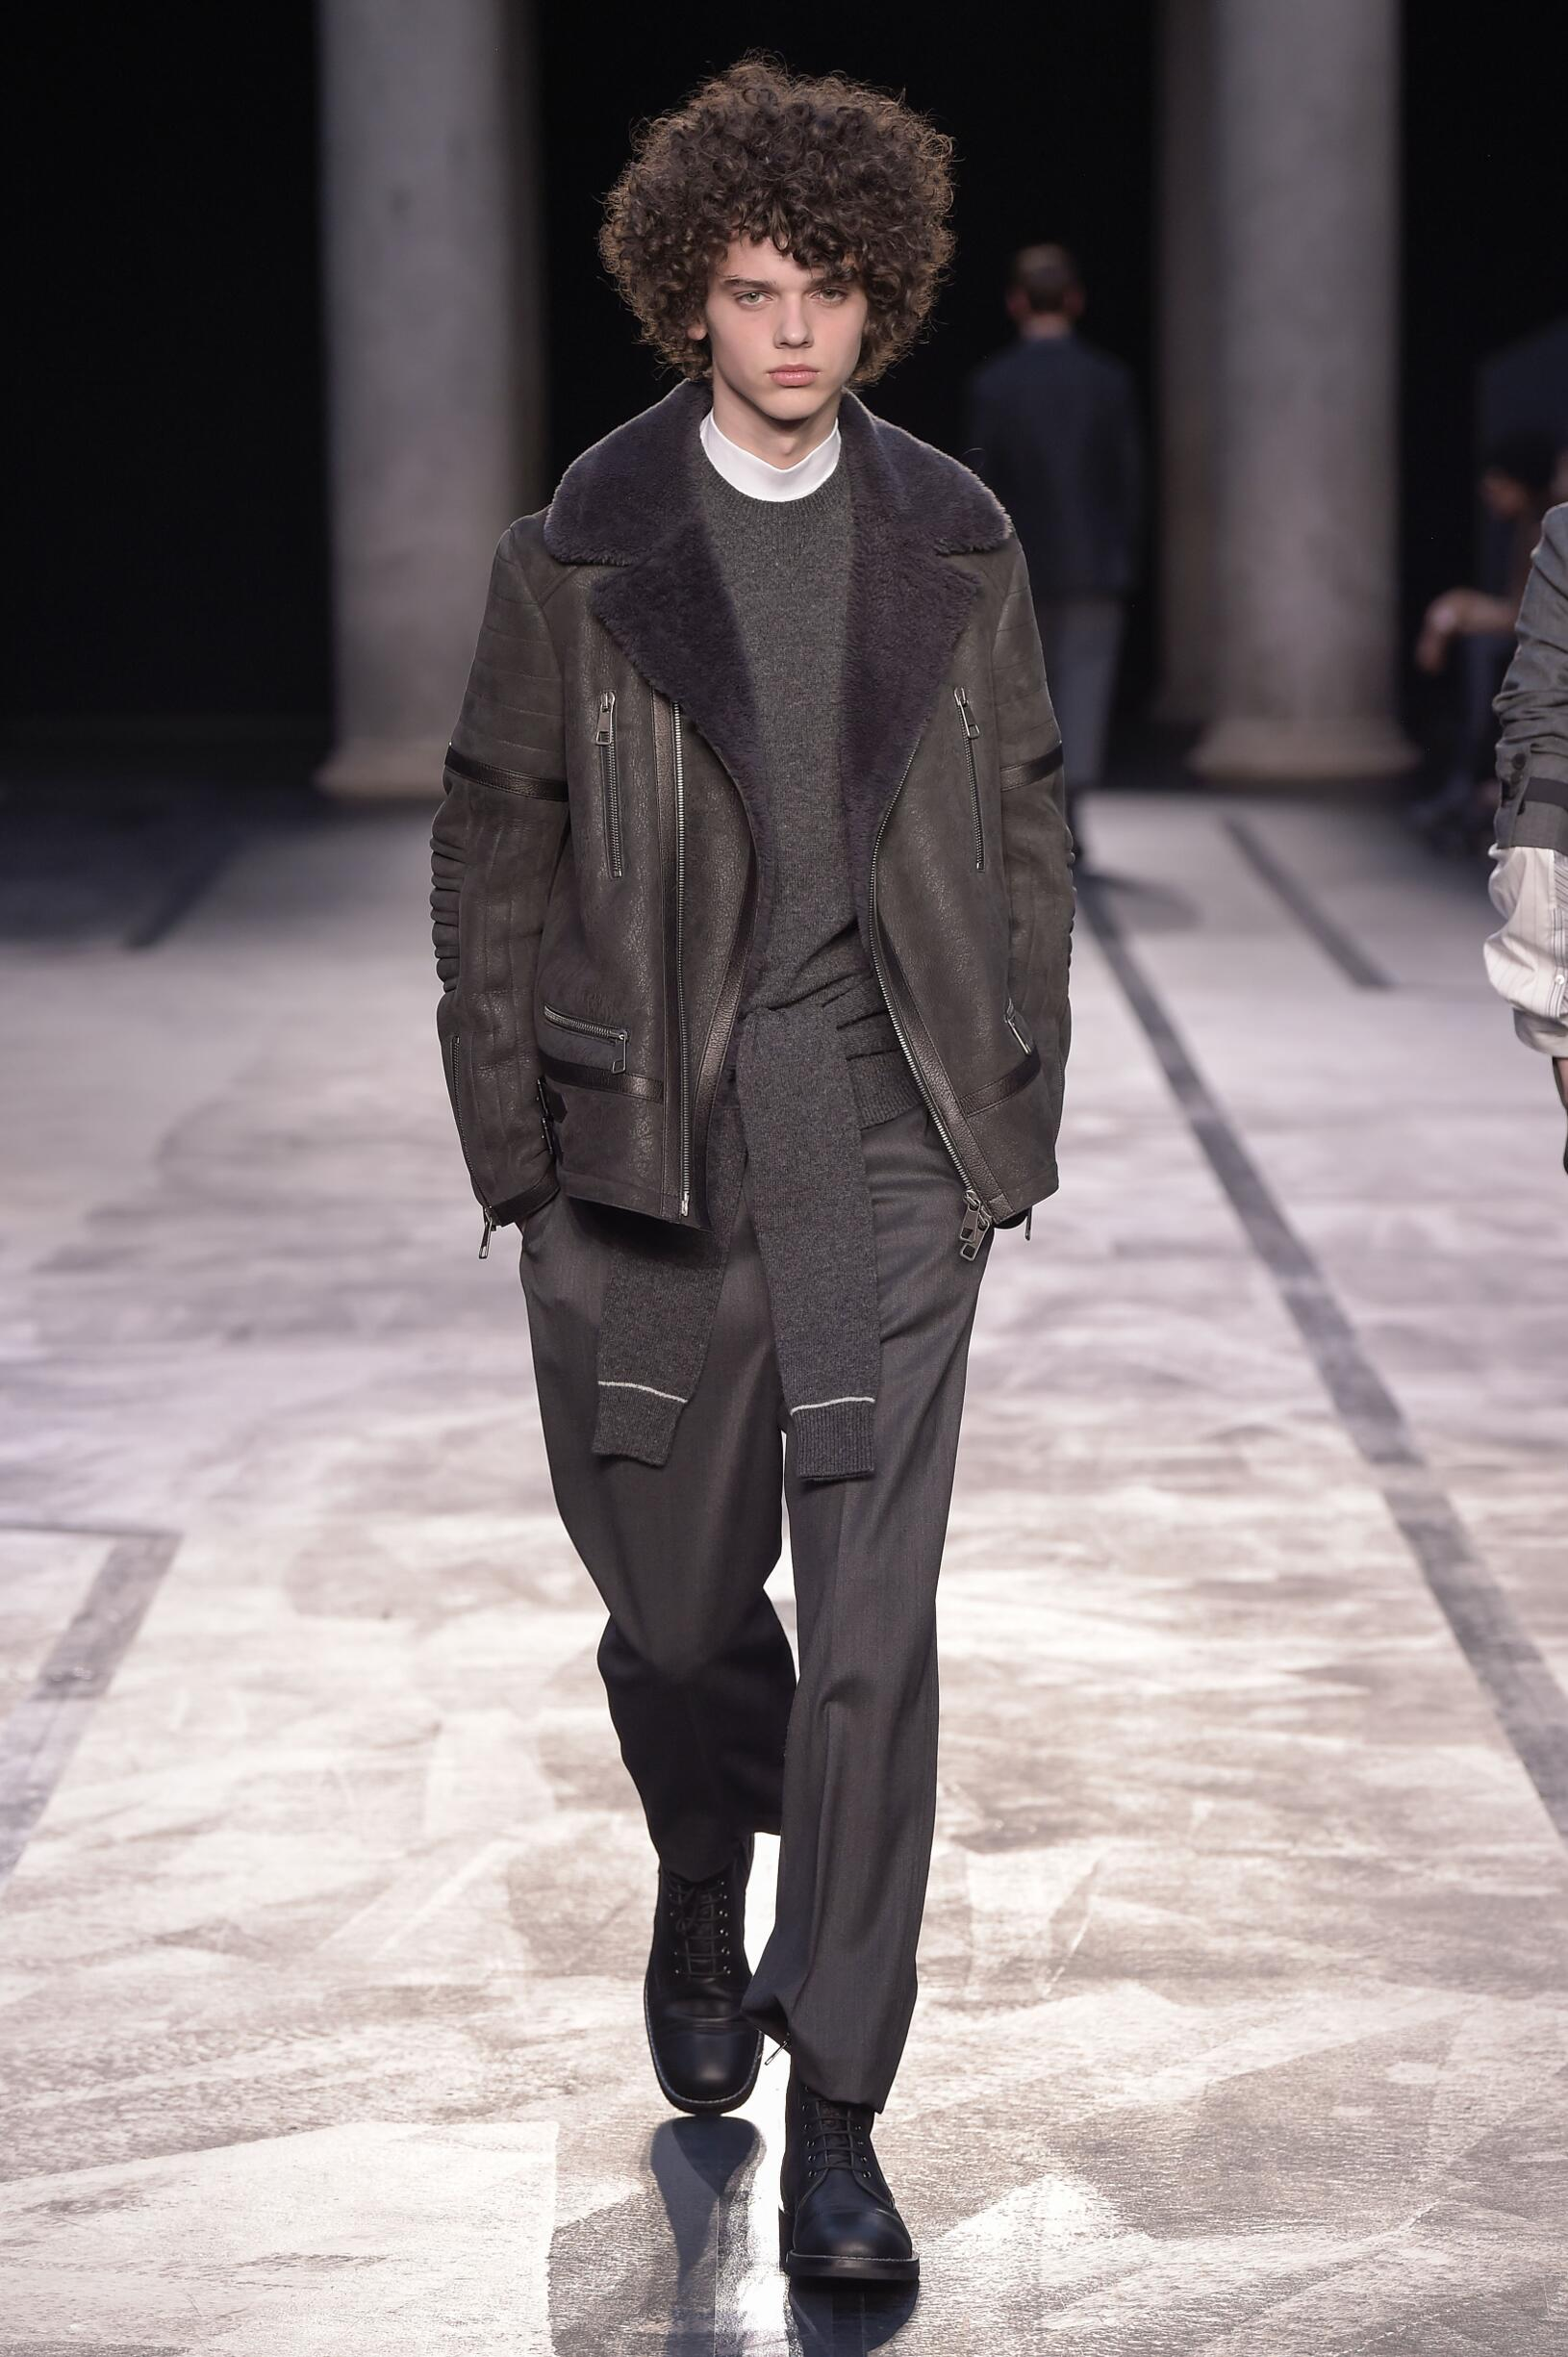 Menswear Winter Neil Barrett 2017